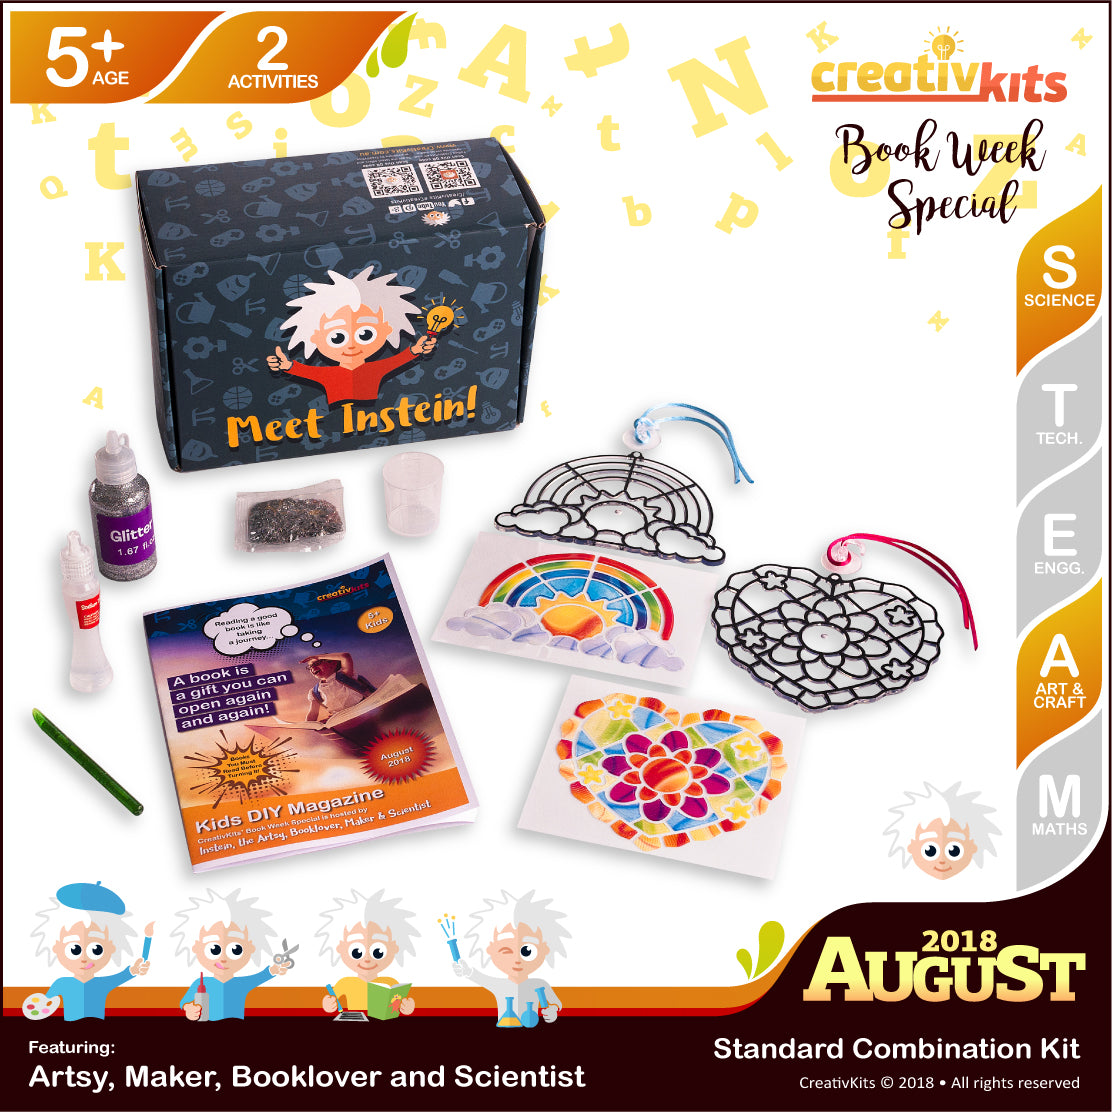 DIY Holographic Slime and DIY Dream Glass Sun-catchers | August Art and Science Combo Kit | Age 5+